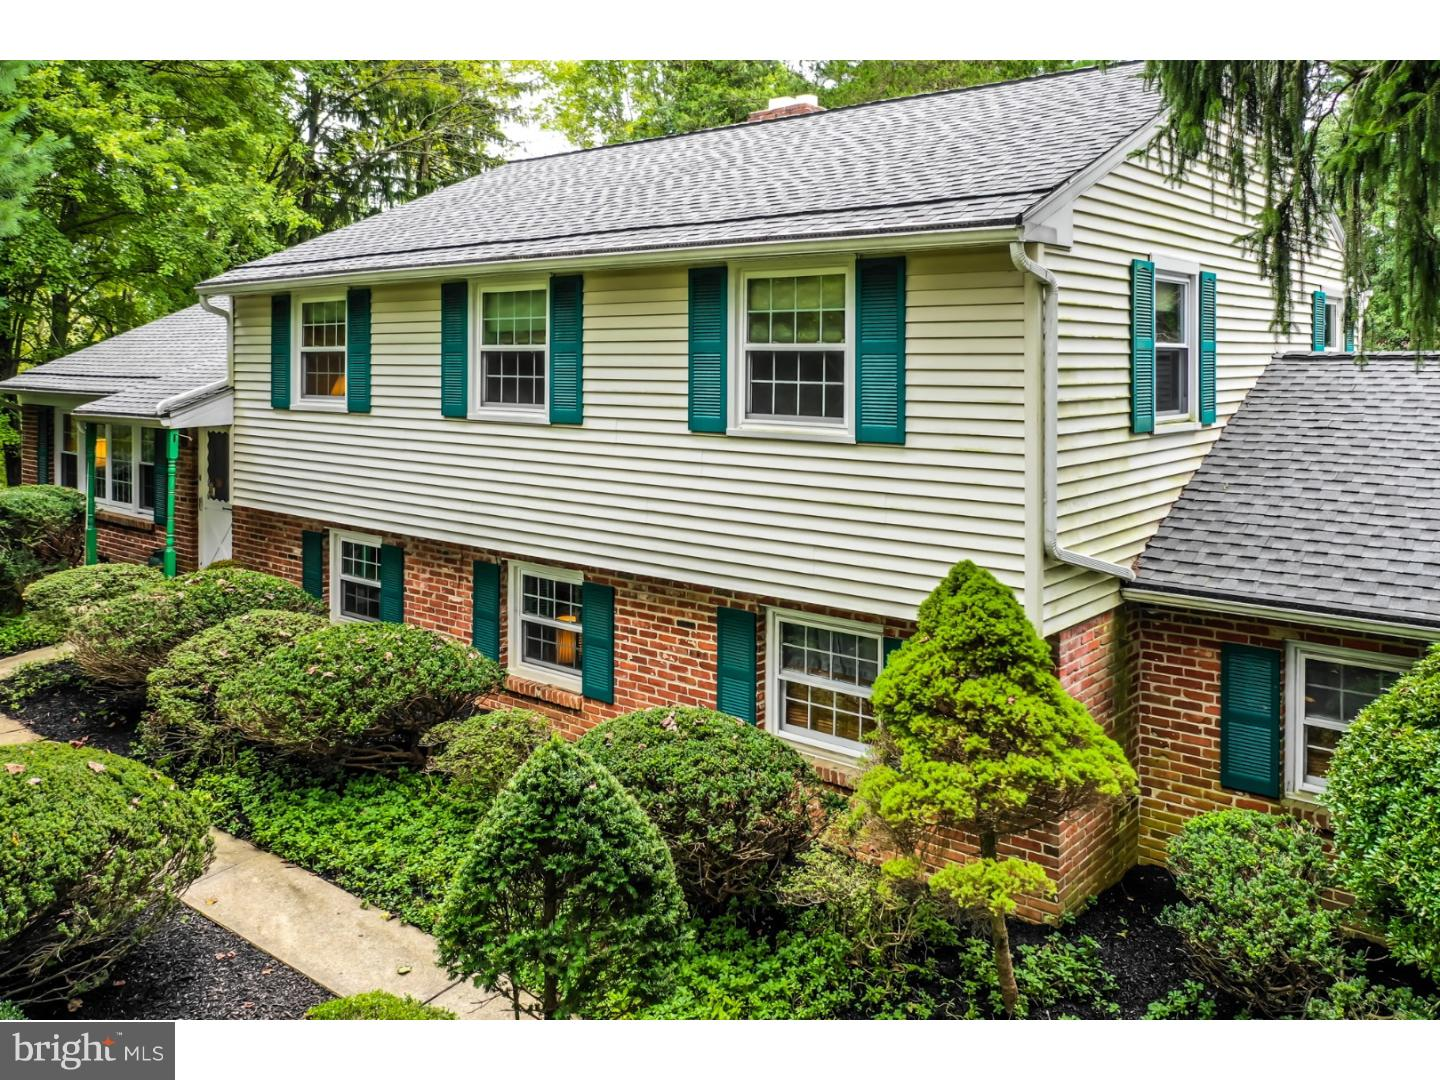 204 Edith Lane West Chester, PA 19380